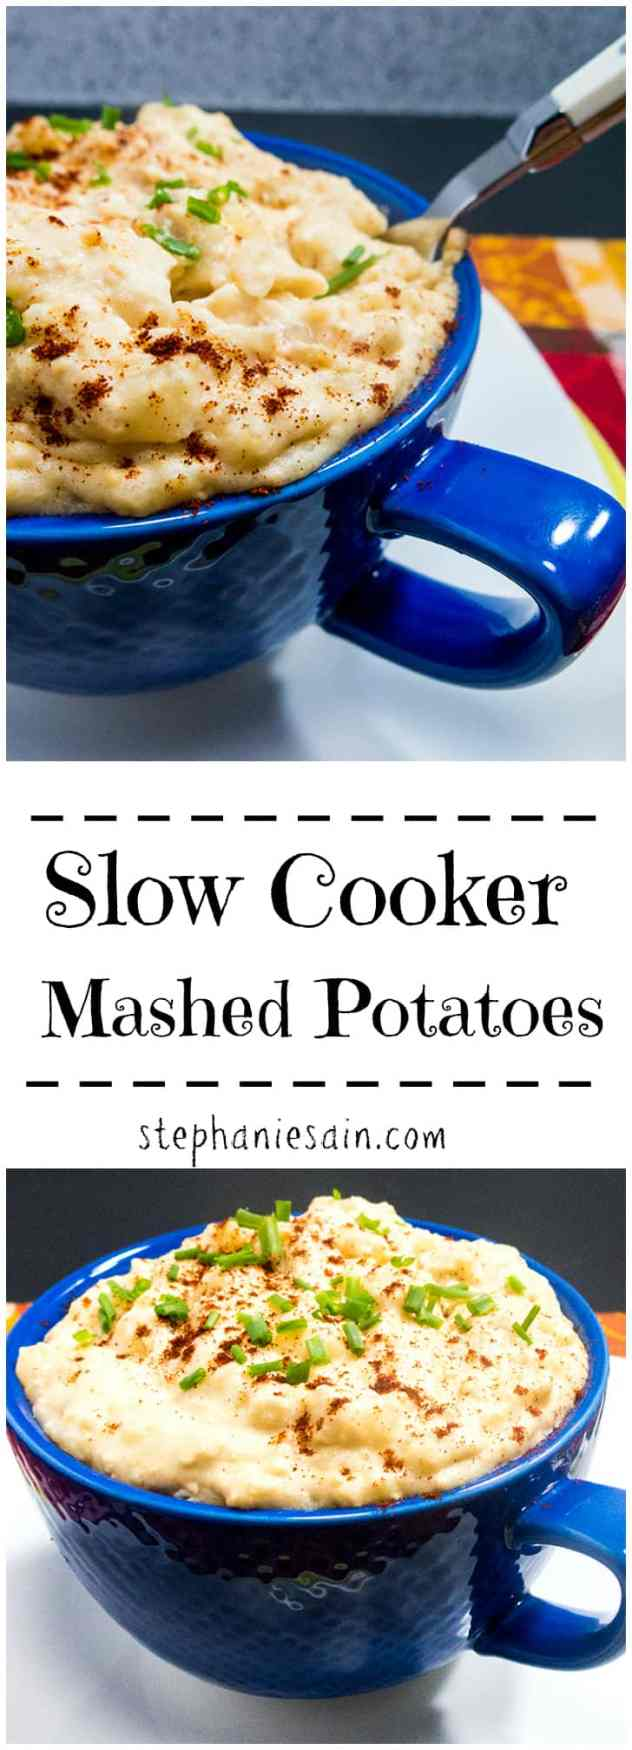 Slow Cooker Mashed Potatoes are so easy to prepare and a tasty, creamy mashed potato perfect for all occasions. Vegetarian and Gluten Free.